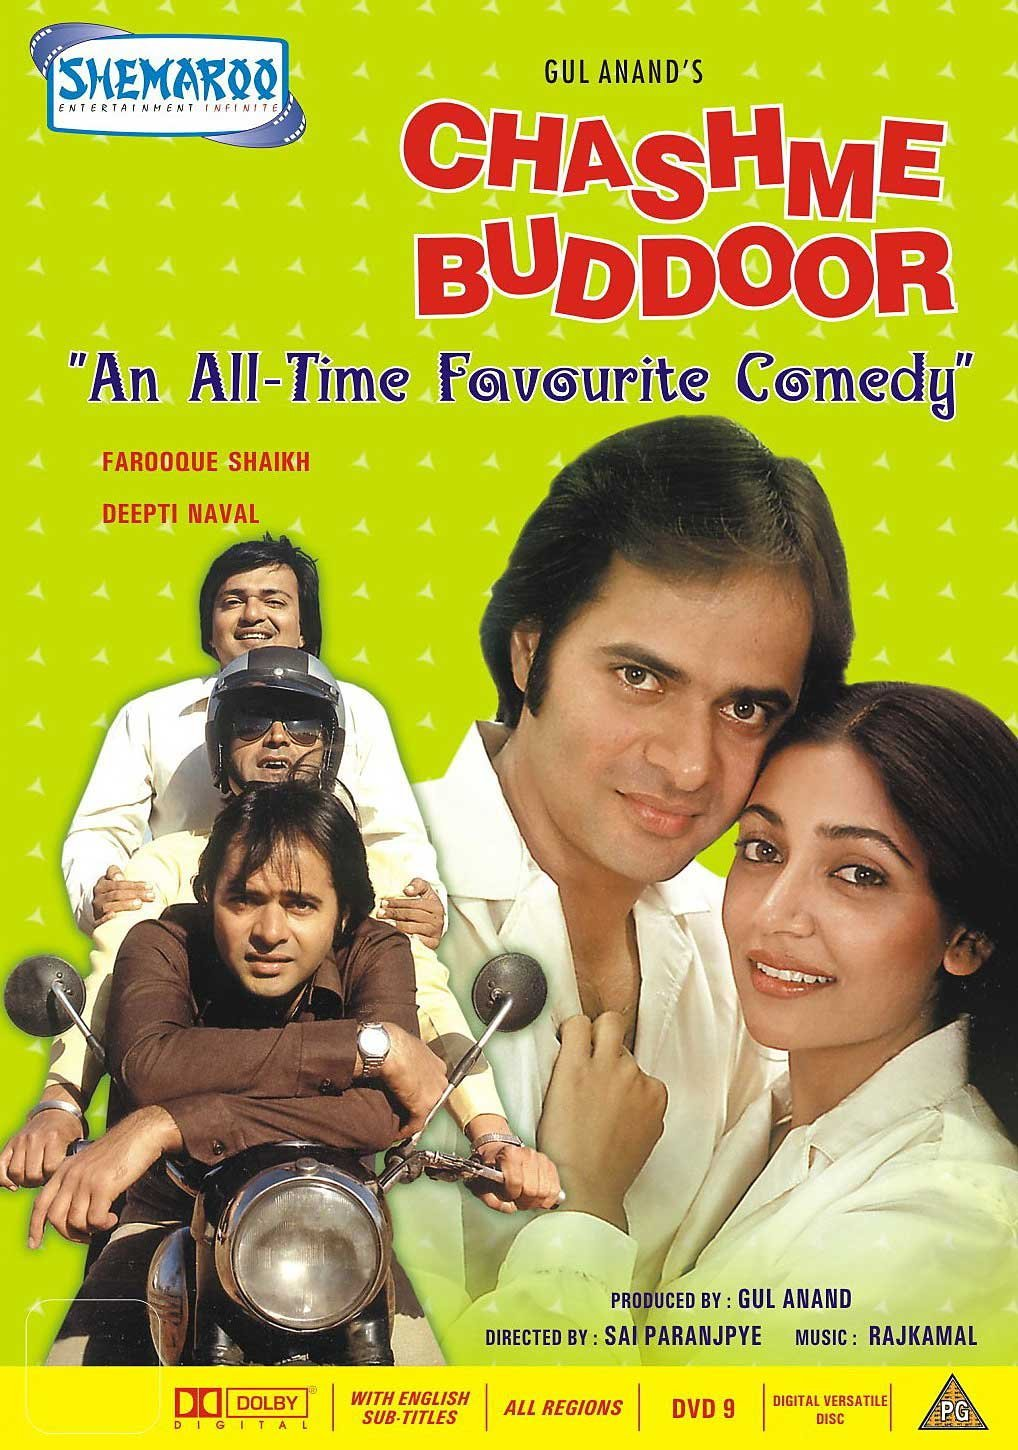 Chashme Buddoor 1981 1080p WEB-DL AVC AAC – DDR | G- Drive | 4 GB |